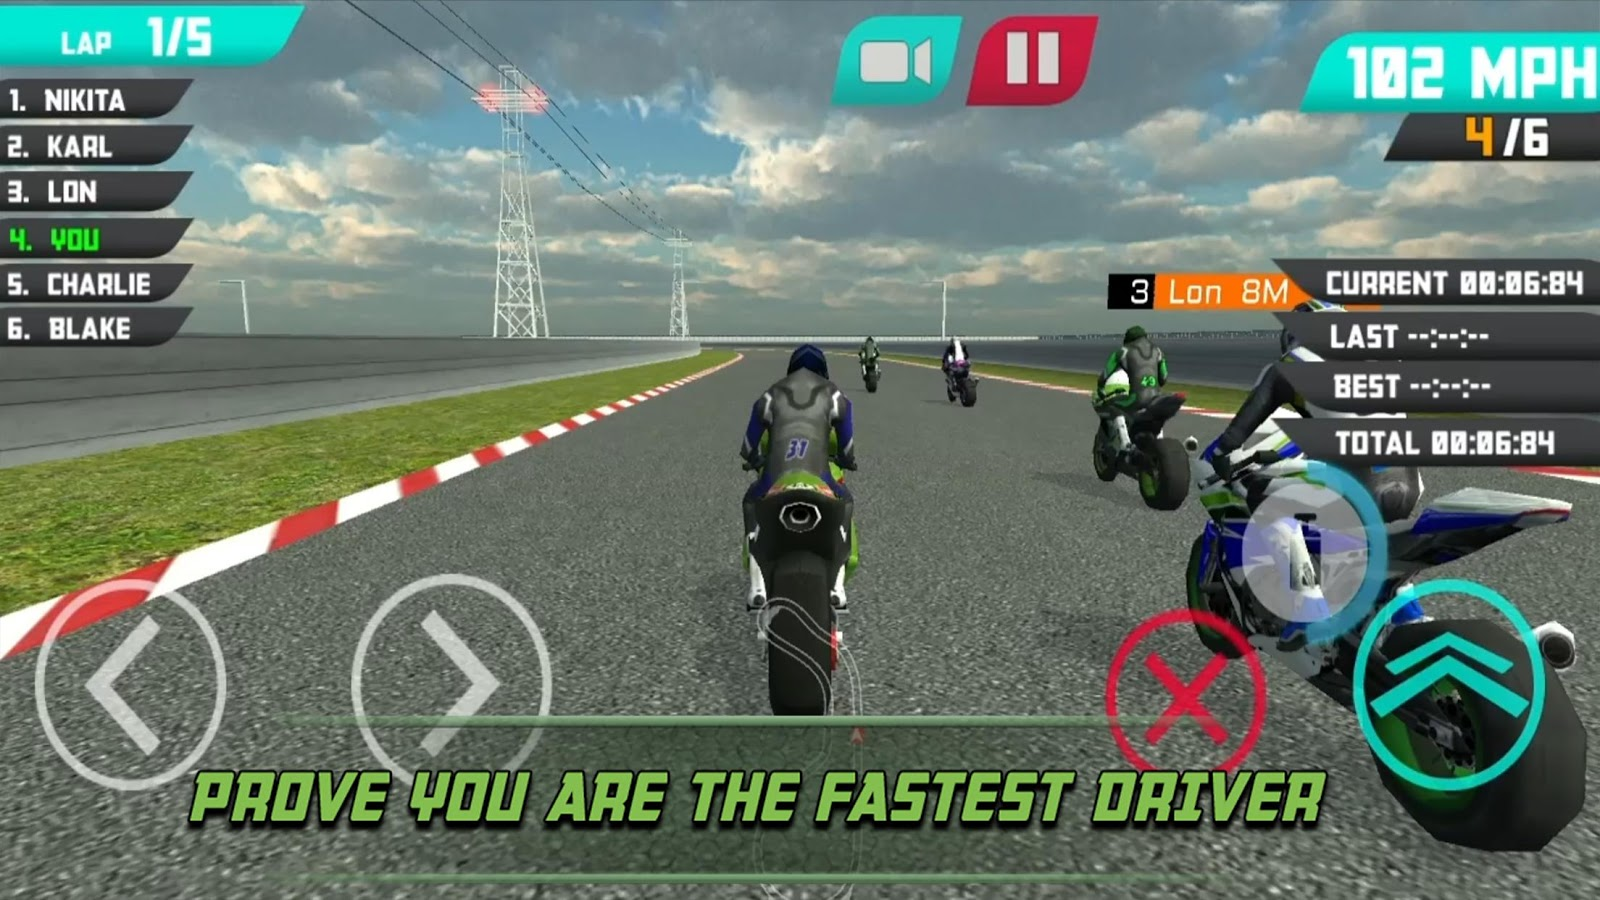 Moto Racing Gp 2017 Free Games Android Apps On Google Play